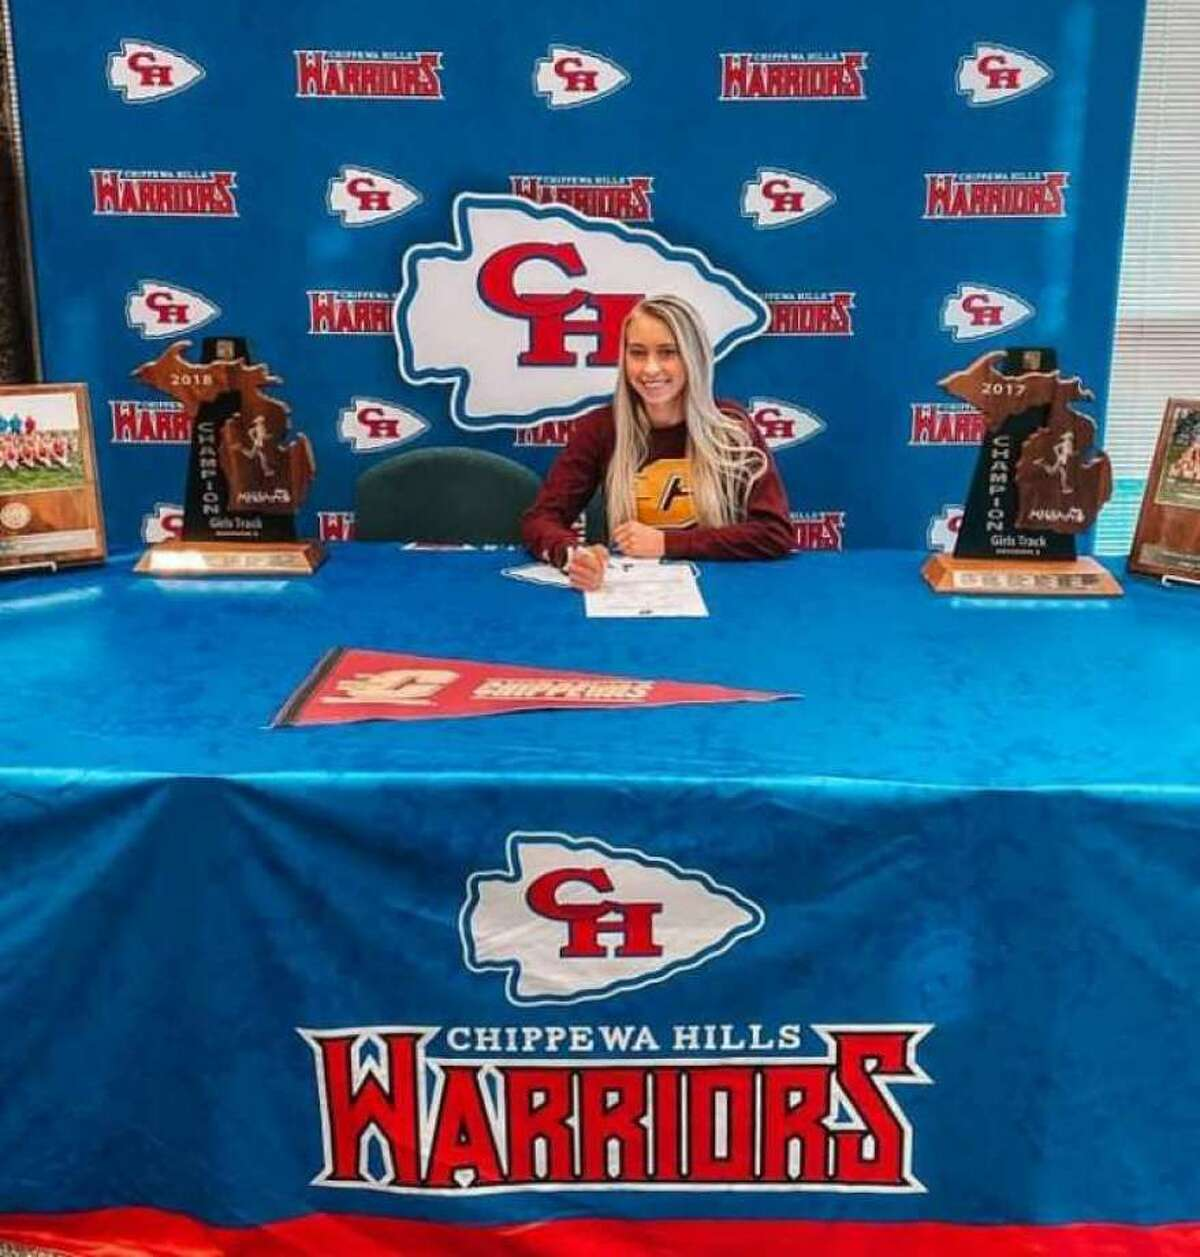 Chippewa Hills senior Natalie Newcombe signed her national letter of intent to run cross country and track and field at Central Michigan University in the fall.